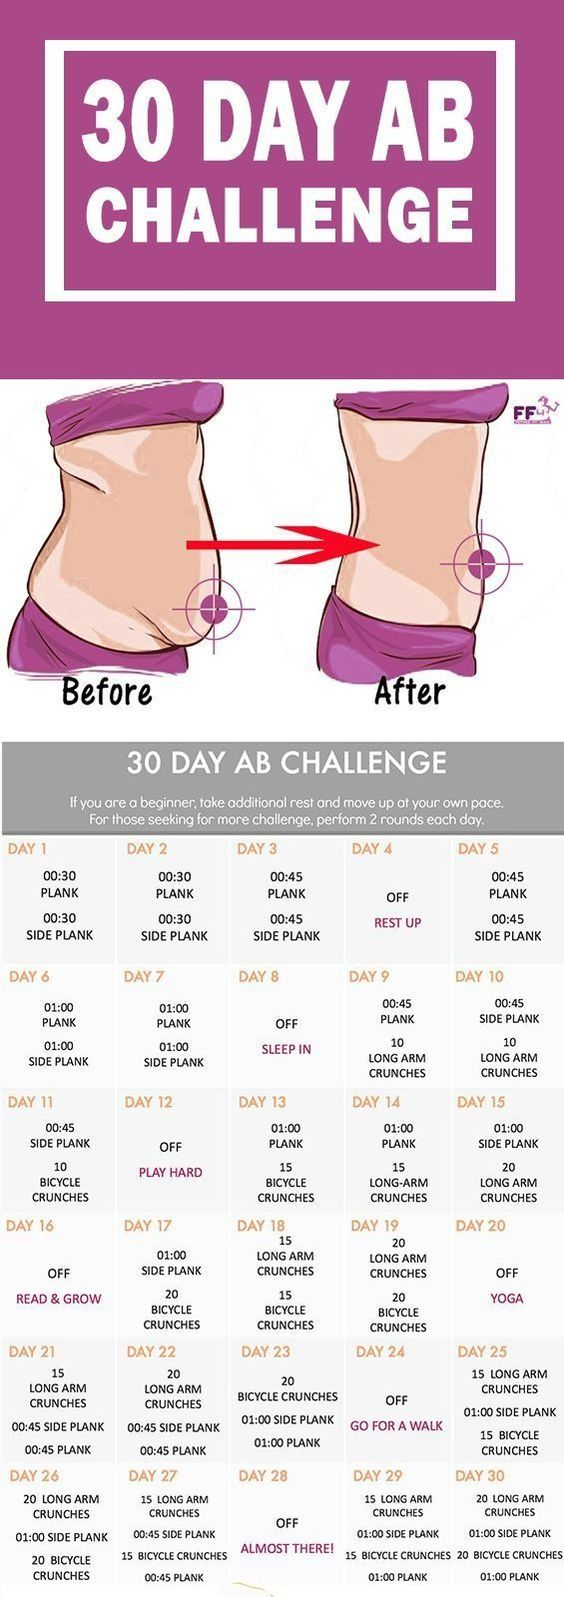 how much should i run daily to lose weight fast